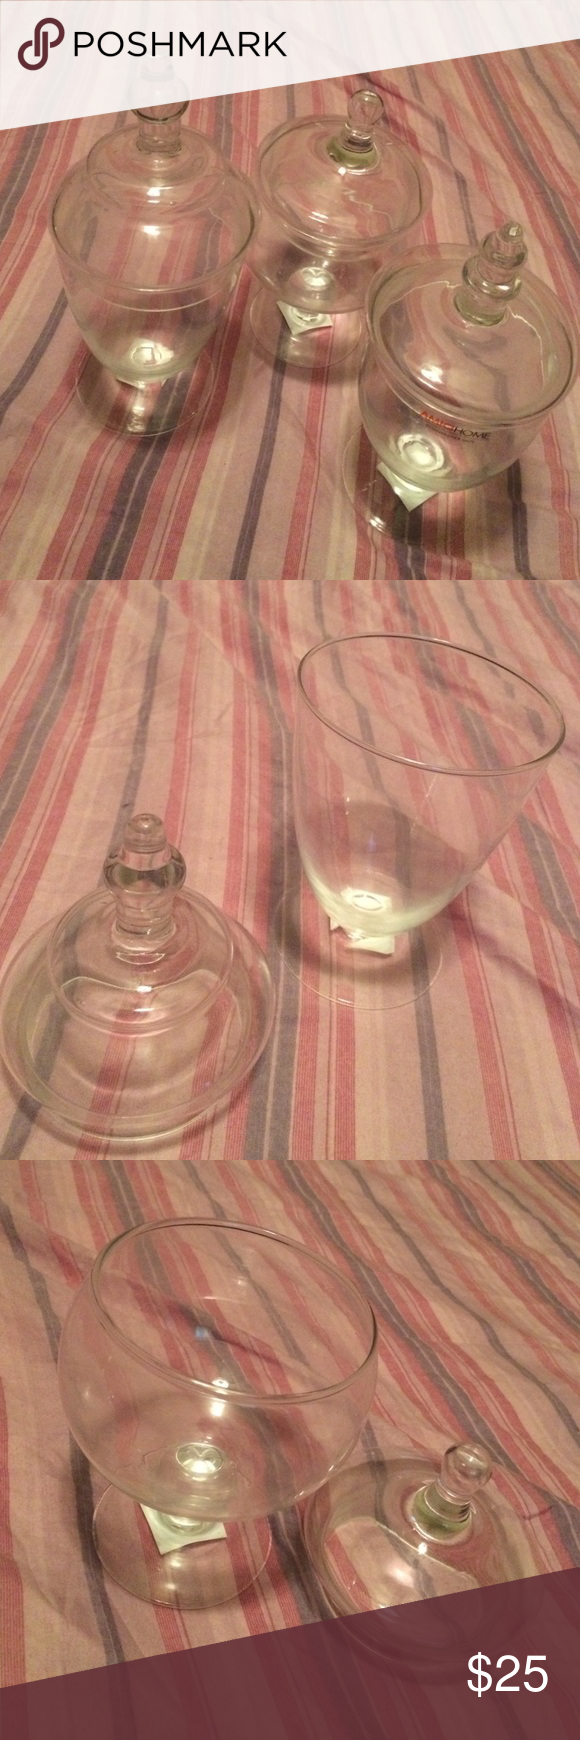 3 glass containers. Exactly as shown, gently used, like new, says they are dishwasher safe. Other